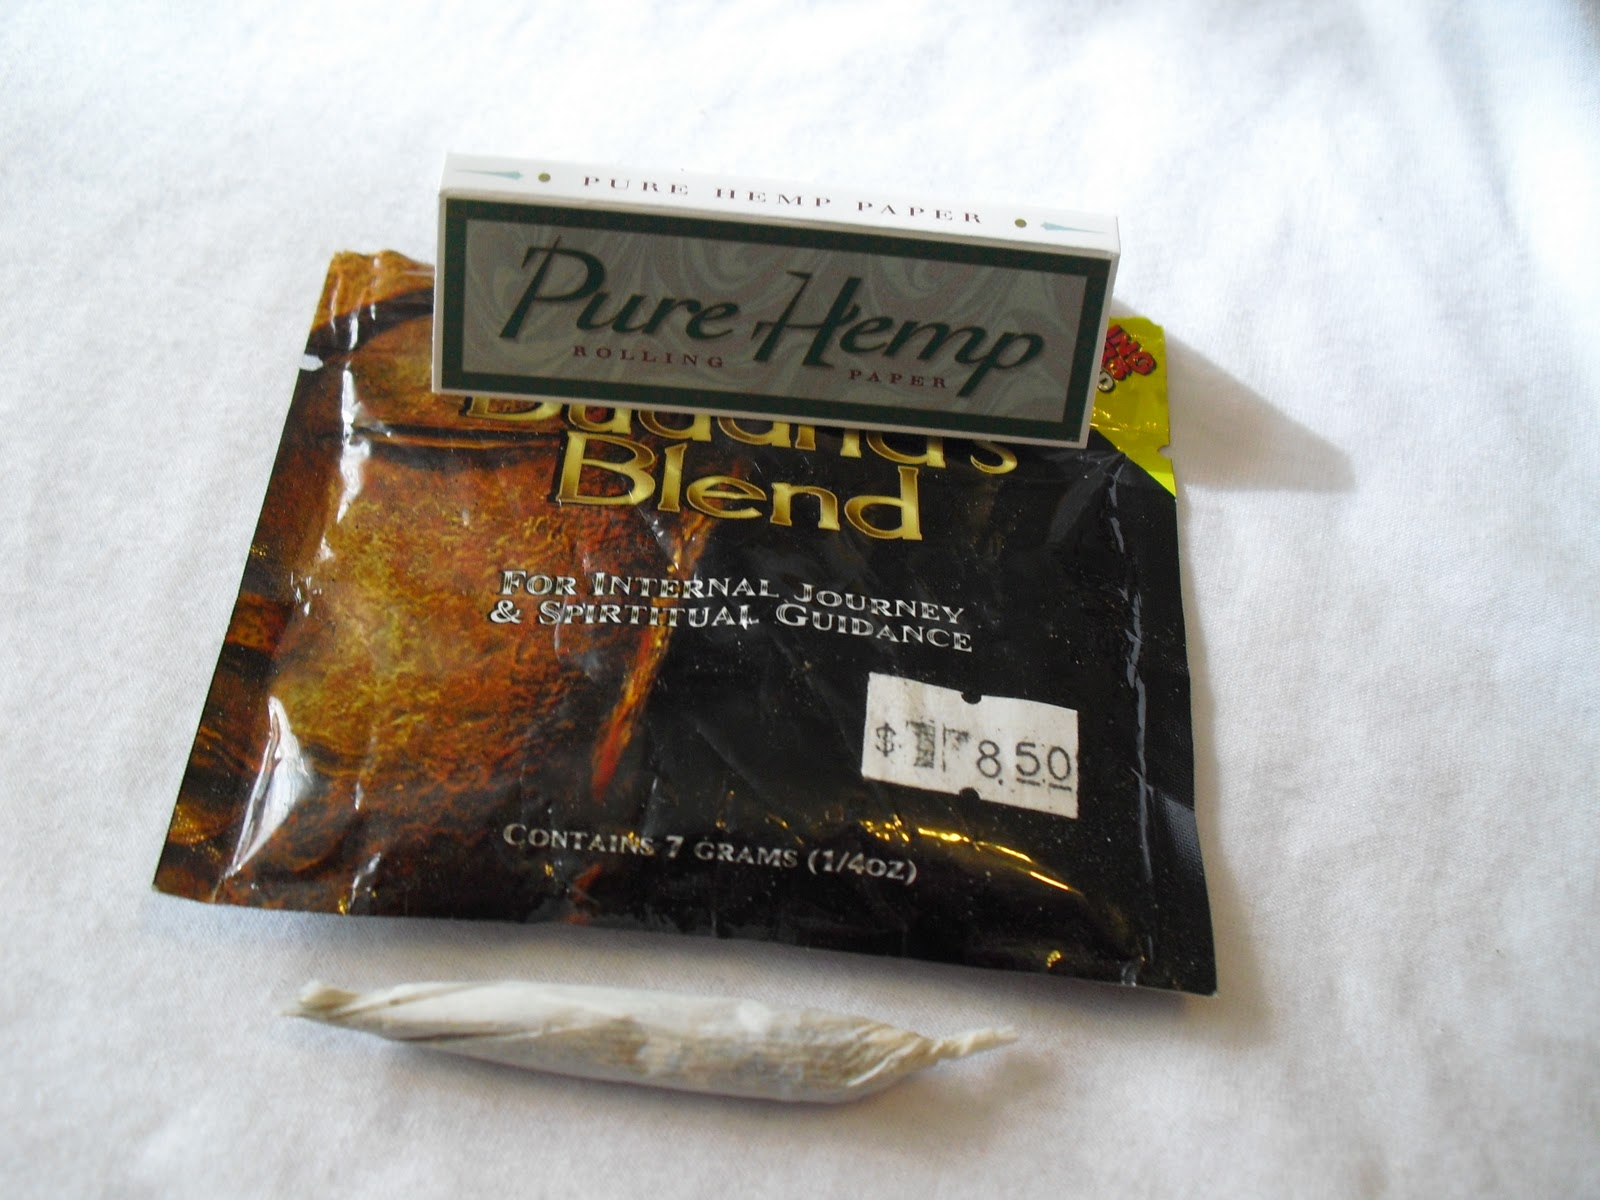 Buy herbal highs - I Purchased Buddha S Blend Also At The Local Head Shop In Cedar About A Year Ago I Was Looking For Something To Get High Off Of Without The Hassle Of